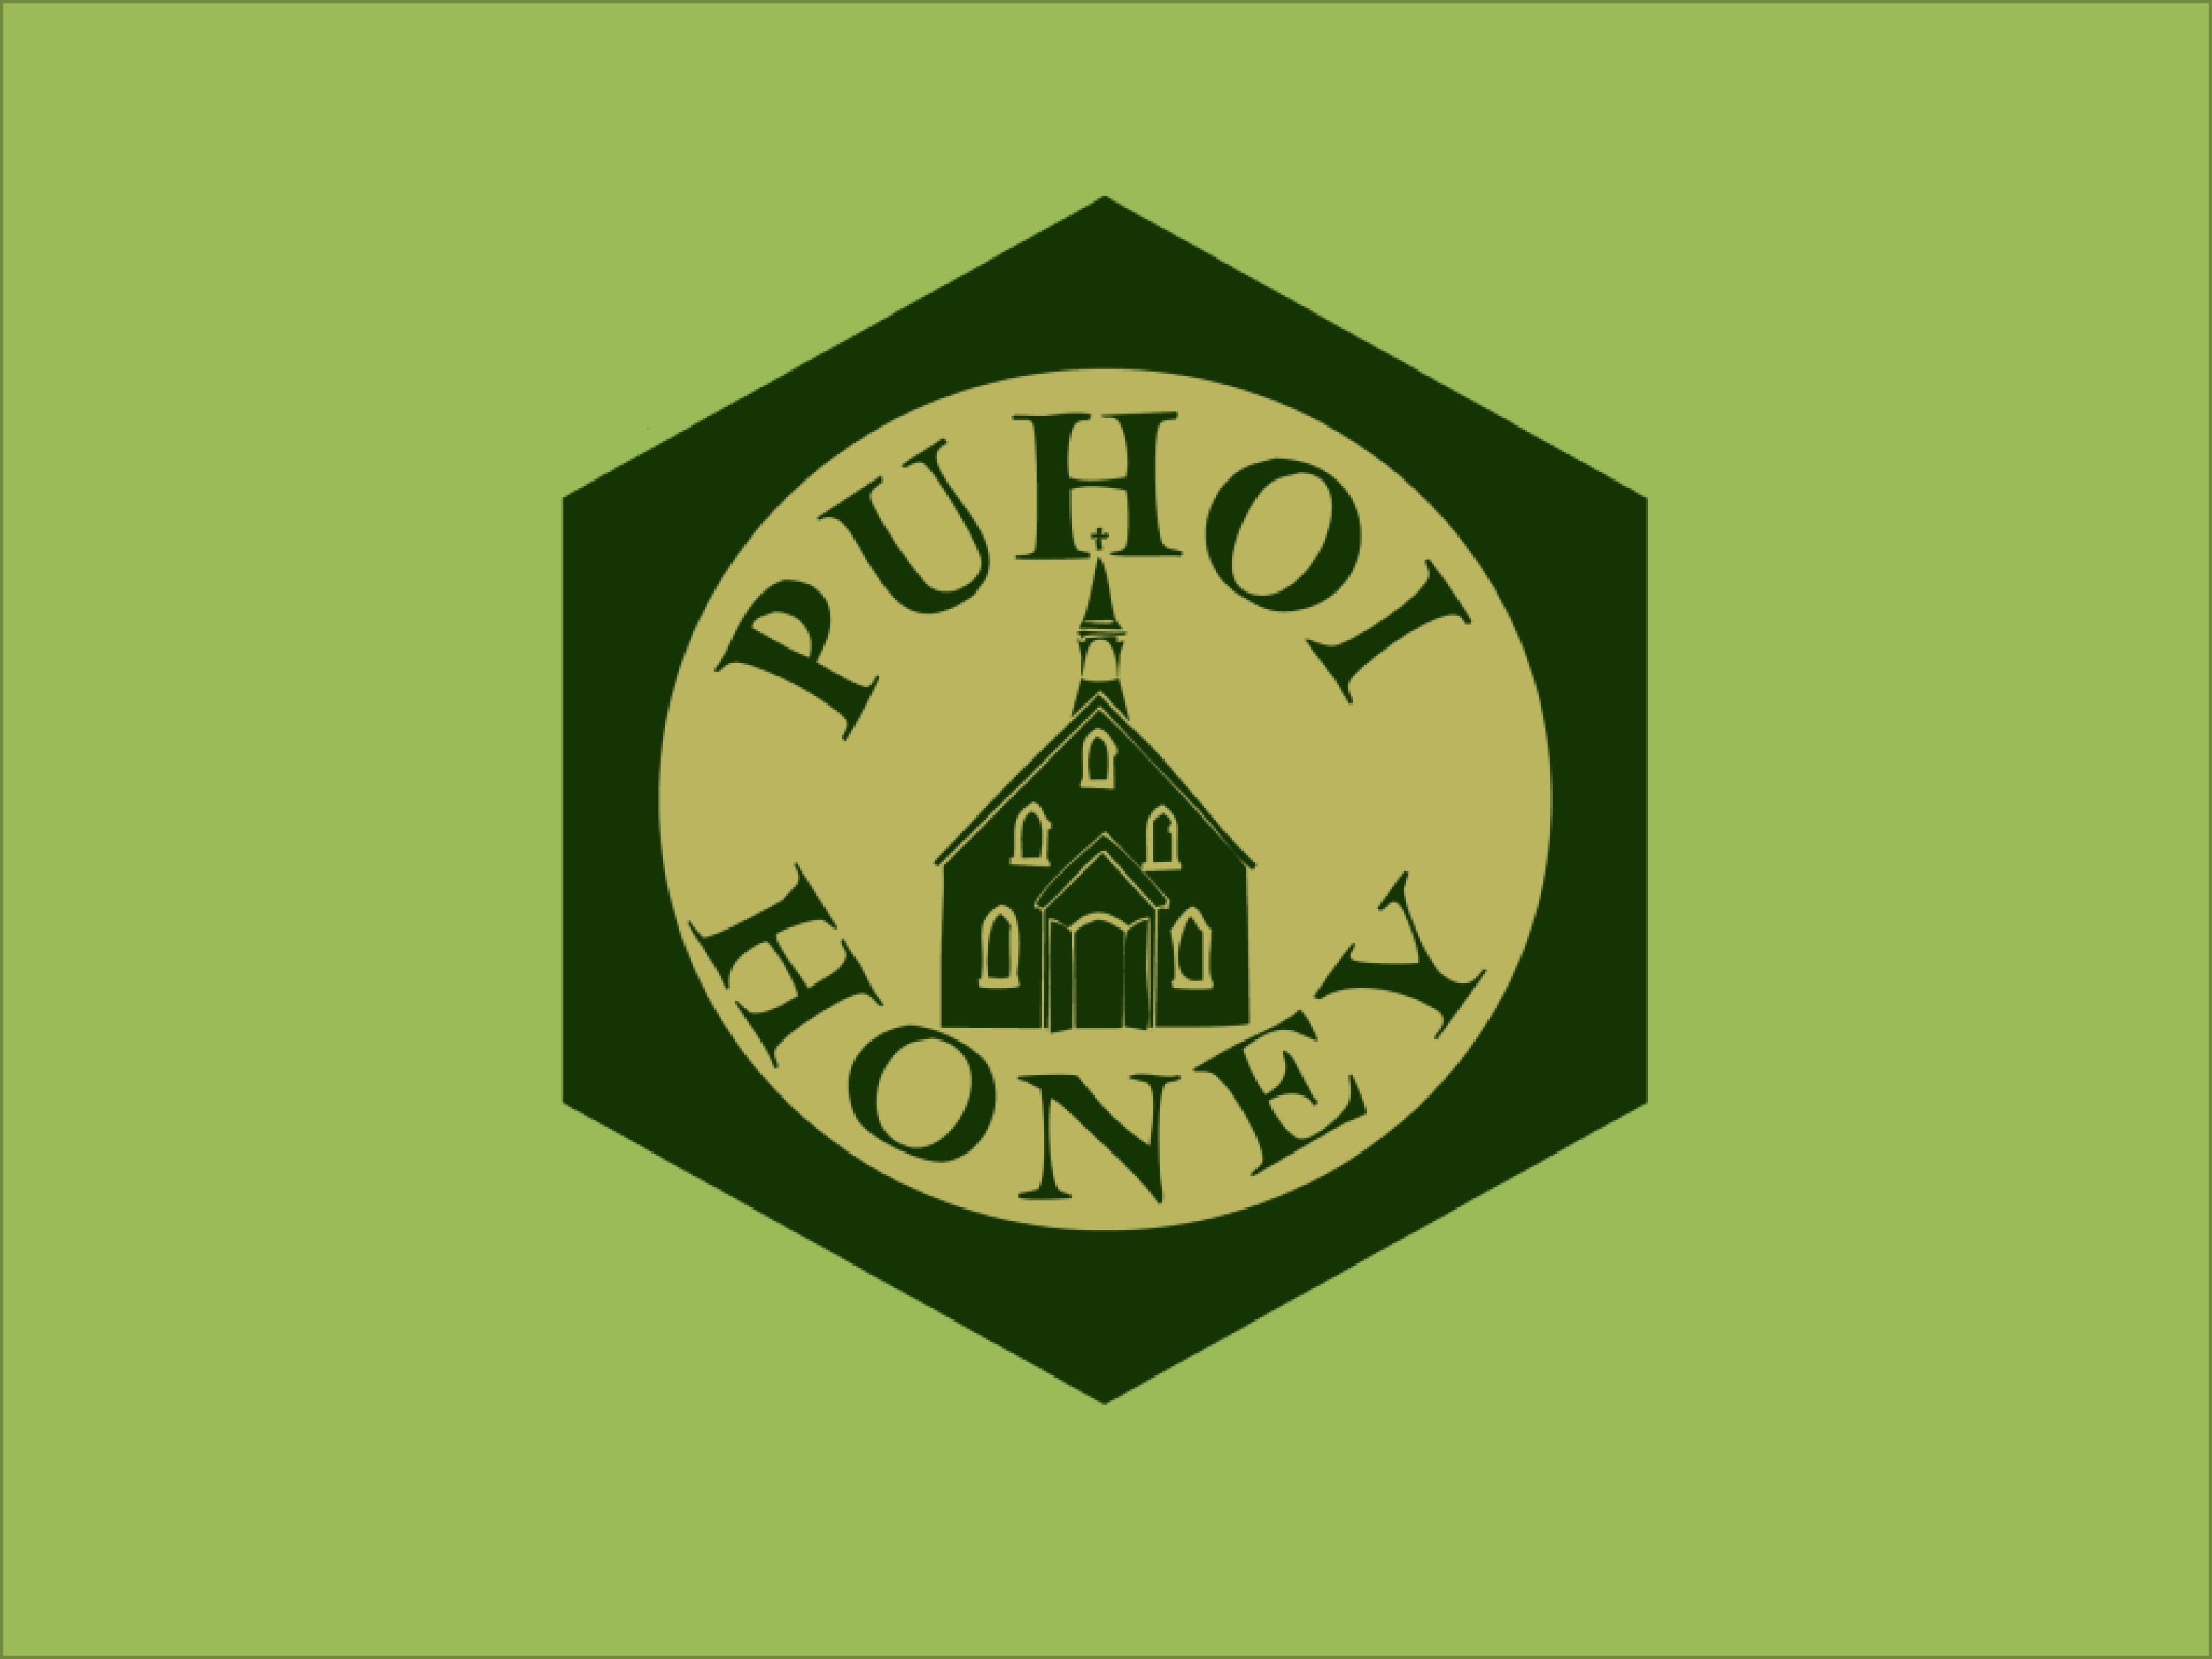 Puhoi Honey